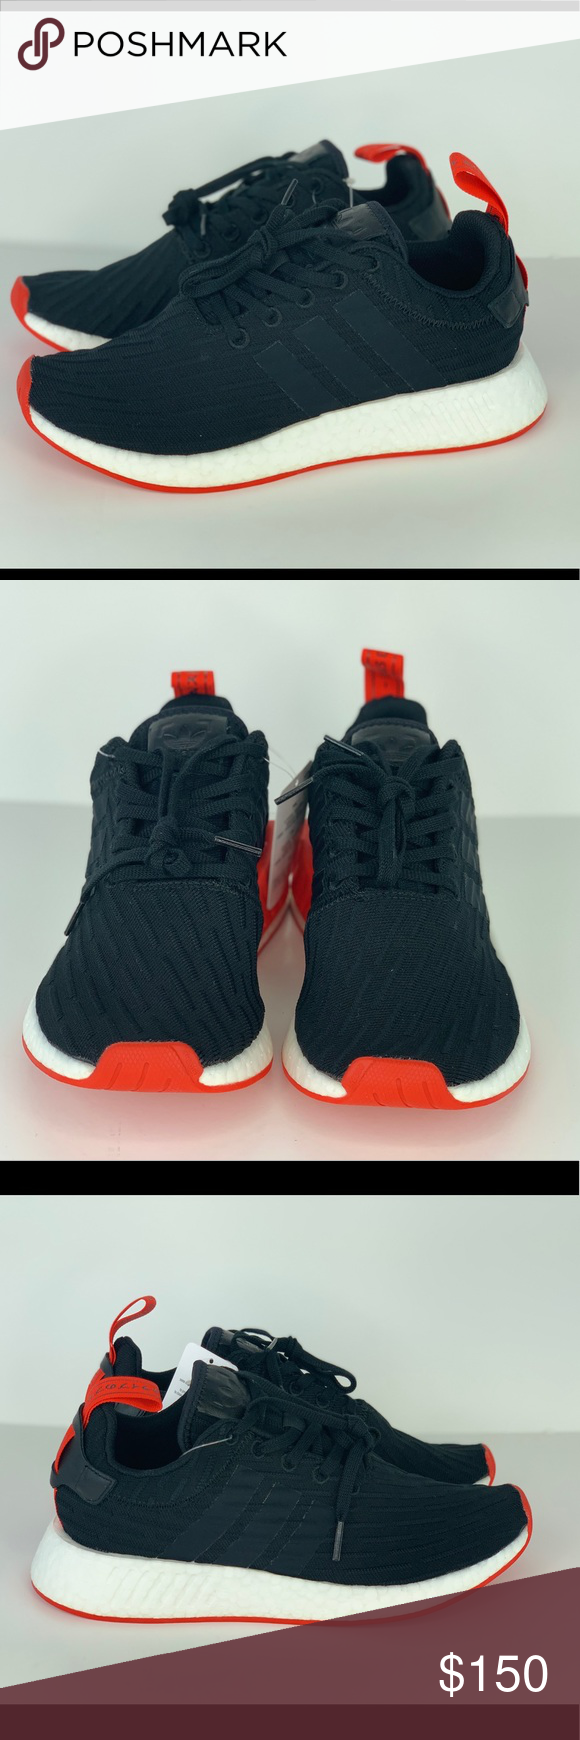 2017 Adidas NMD R2 Primeknit Footwear WhiteCore Red For Sale